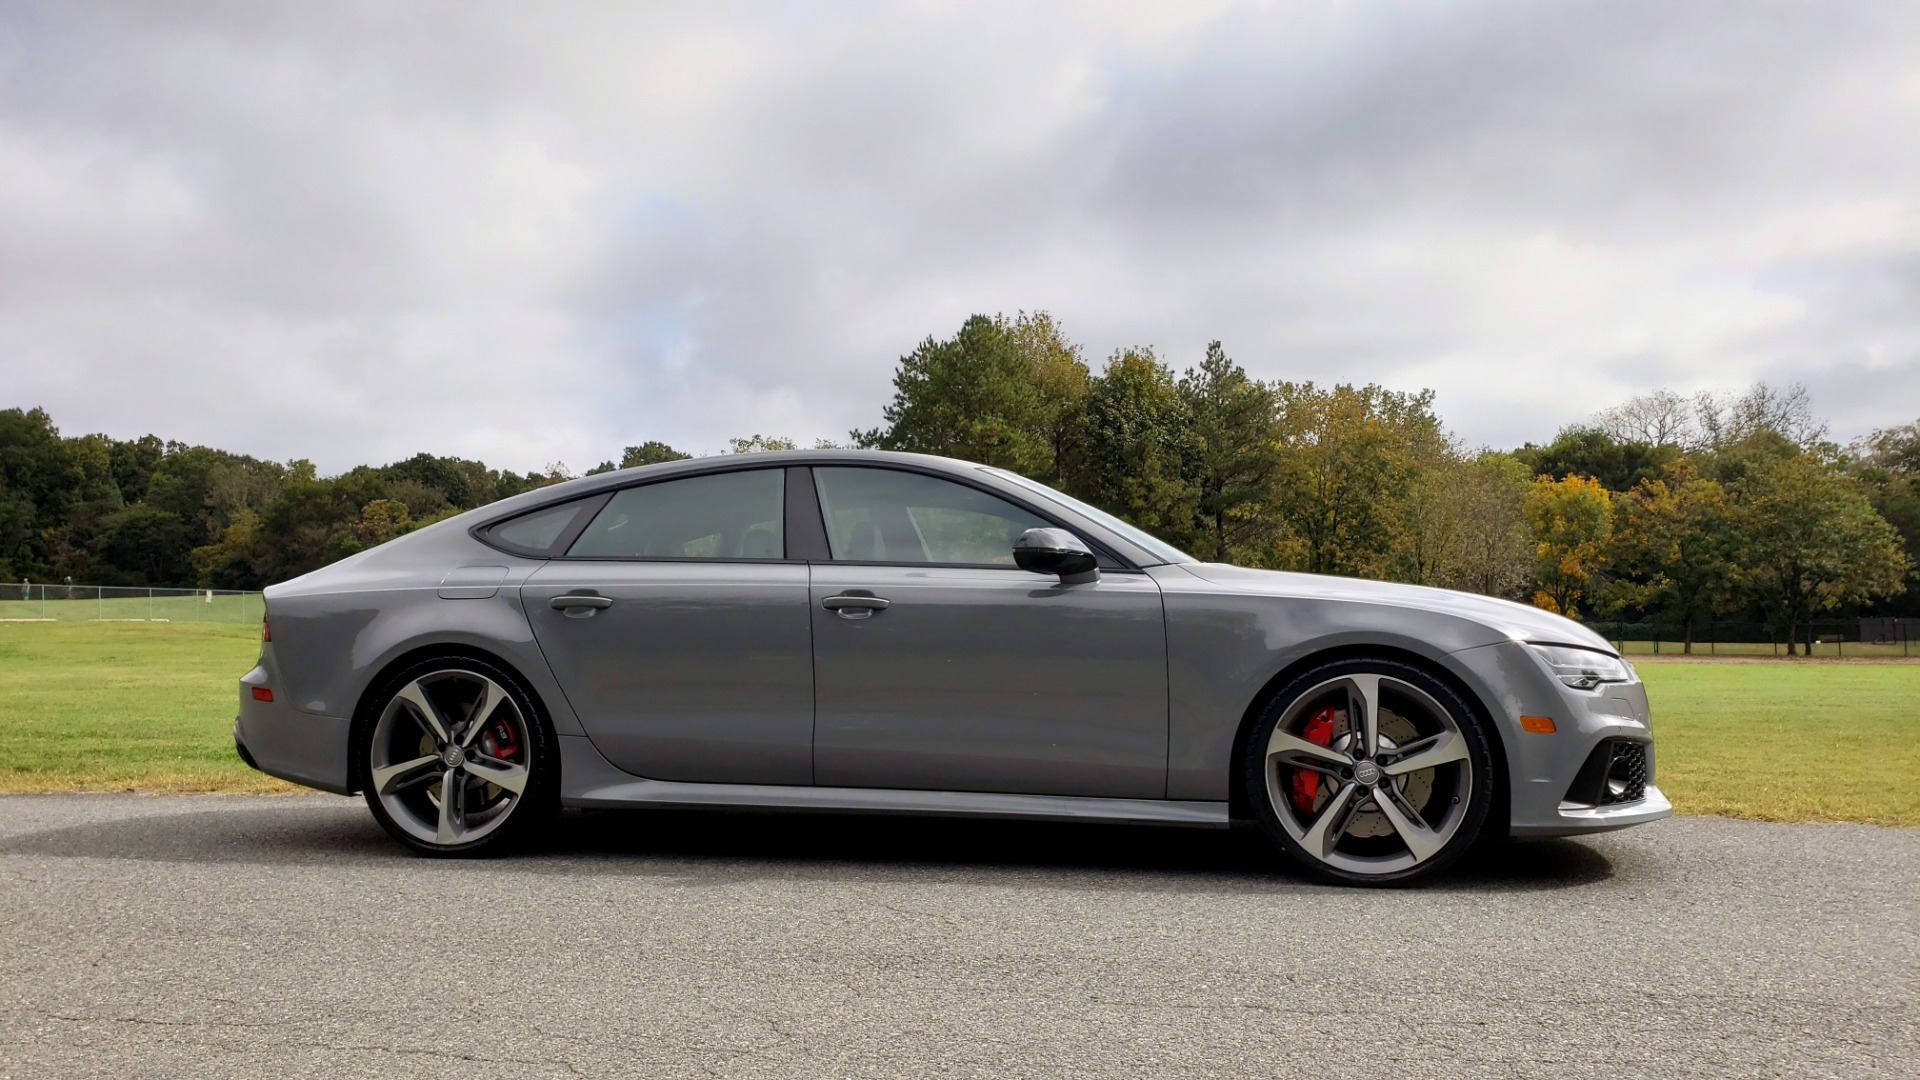 Used 2018 Audi RS 7 4.0T TIPTRONIC / CARBON OPTIC / DRVR ASST / NAV / REARVIEW / 750HP+ for sale Sold at Formula Imports in Charlotte NC 28227 4